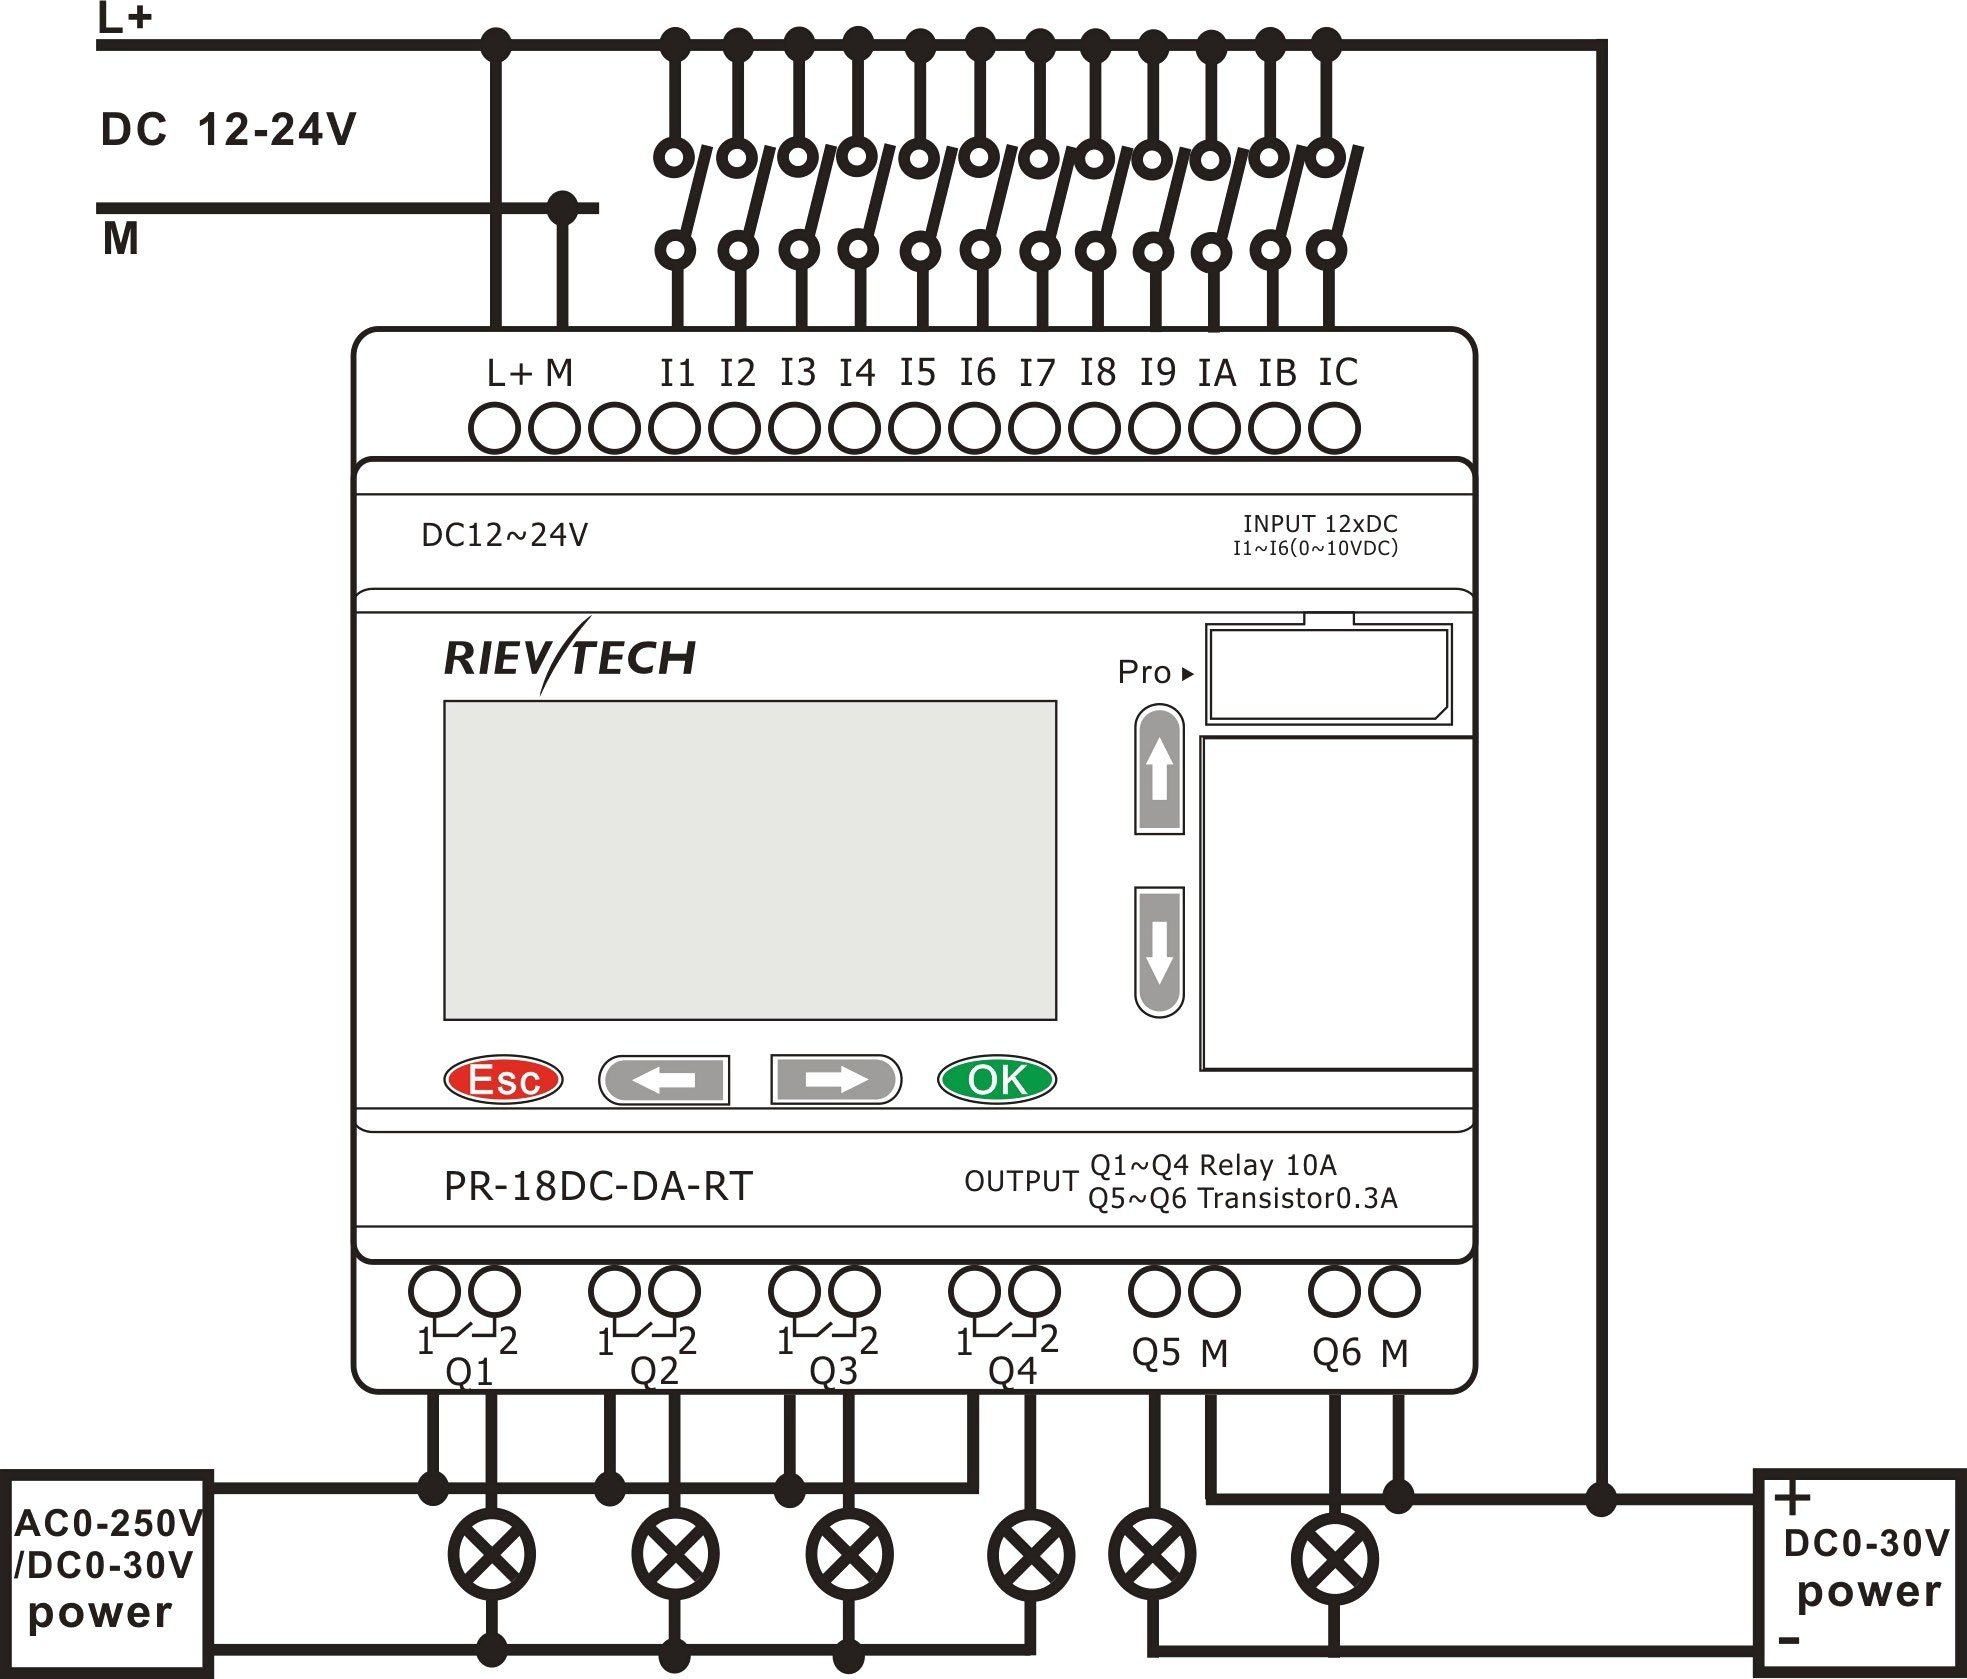 Rs 485 Wire Diagram | Wiring Library - Rs485 Wiring Diagram